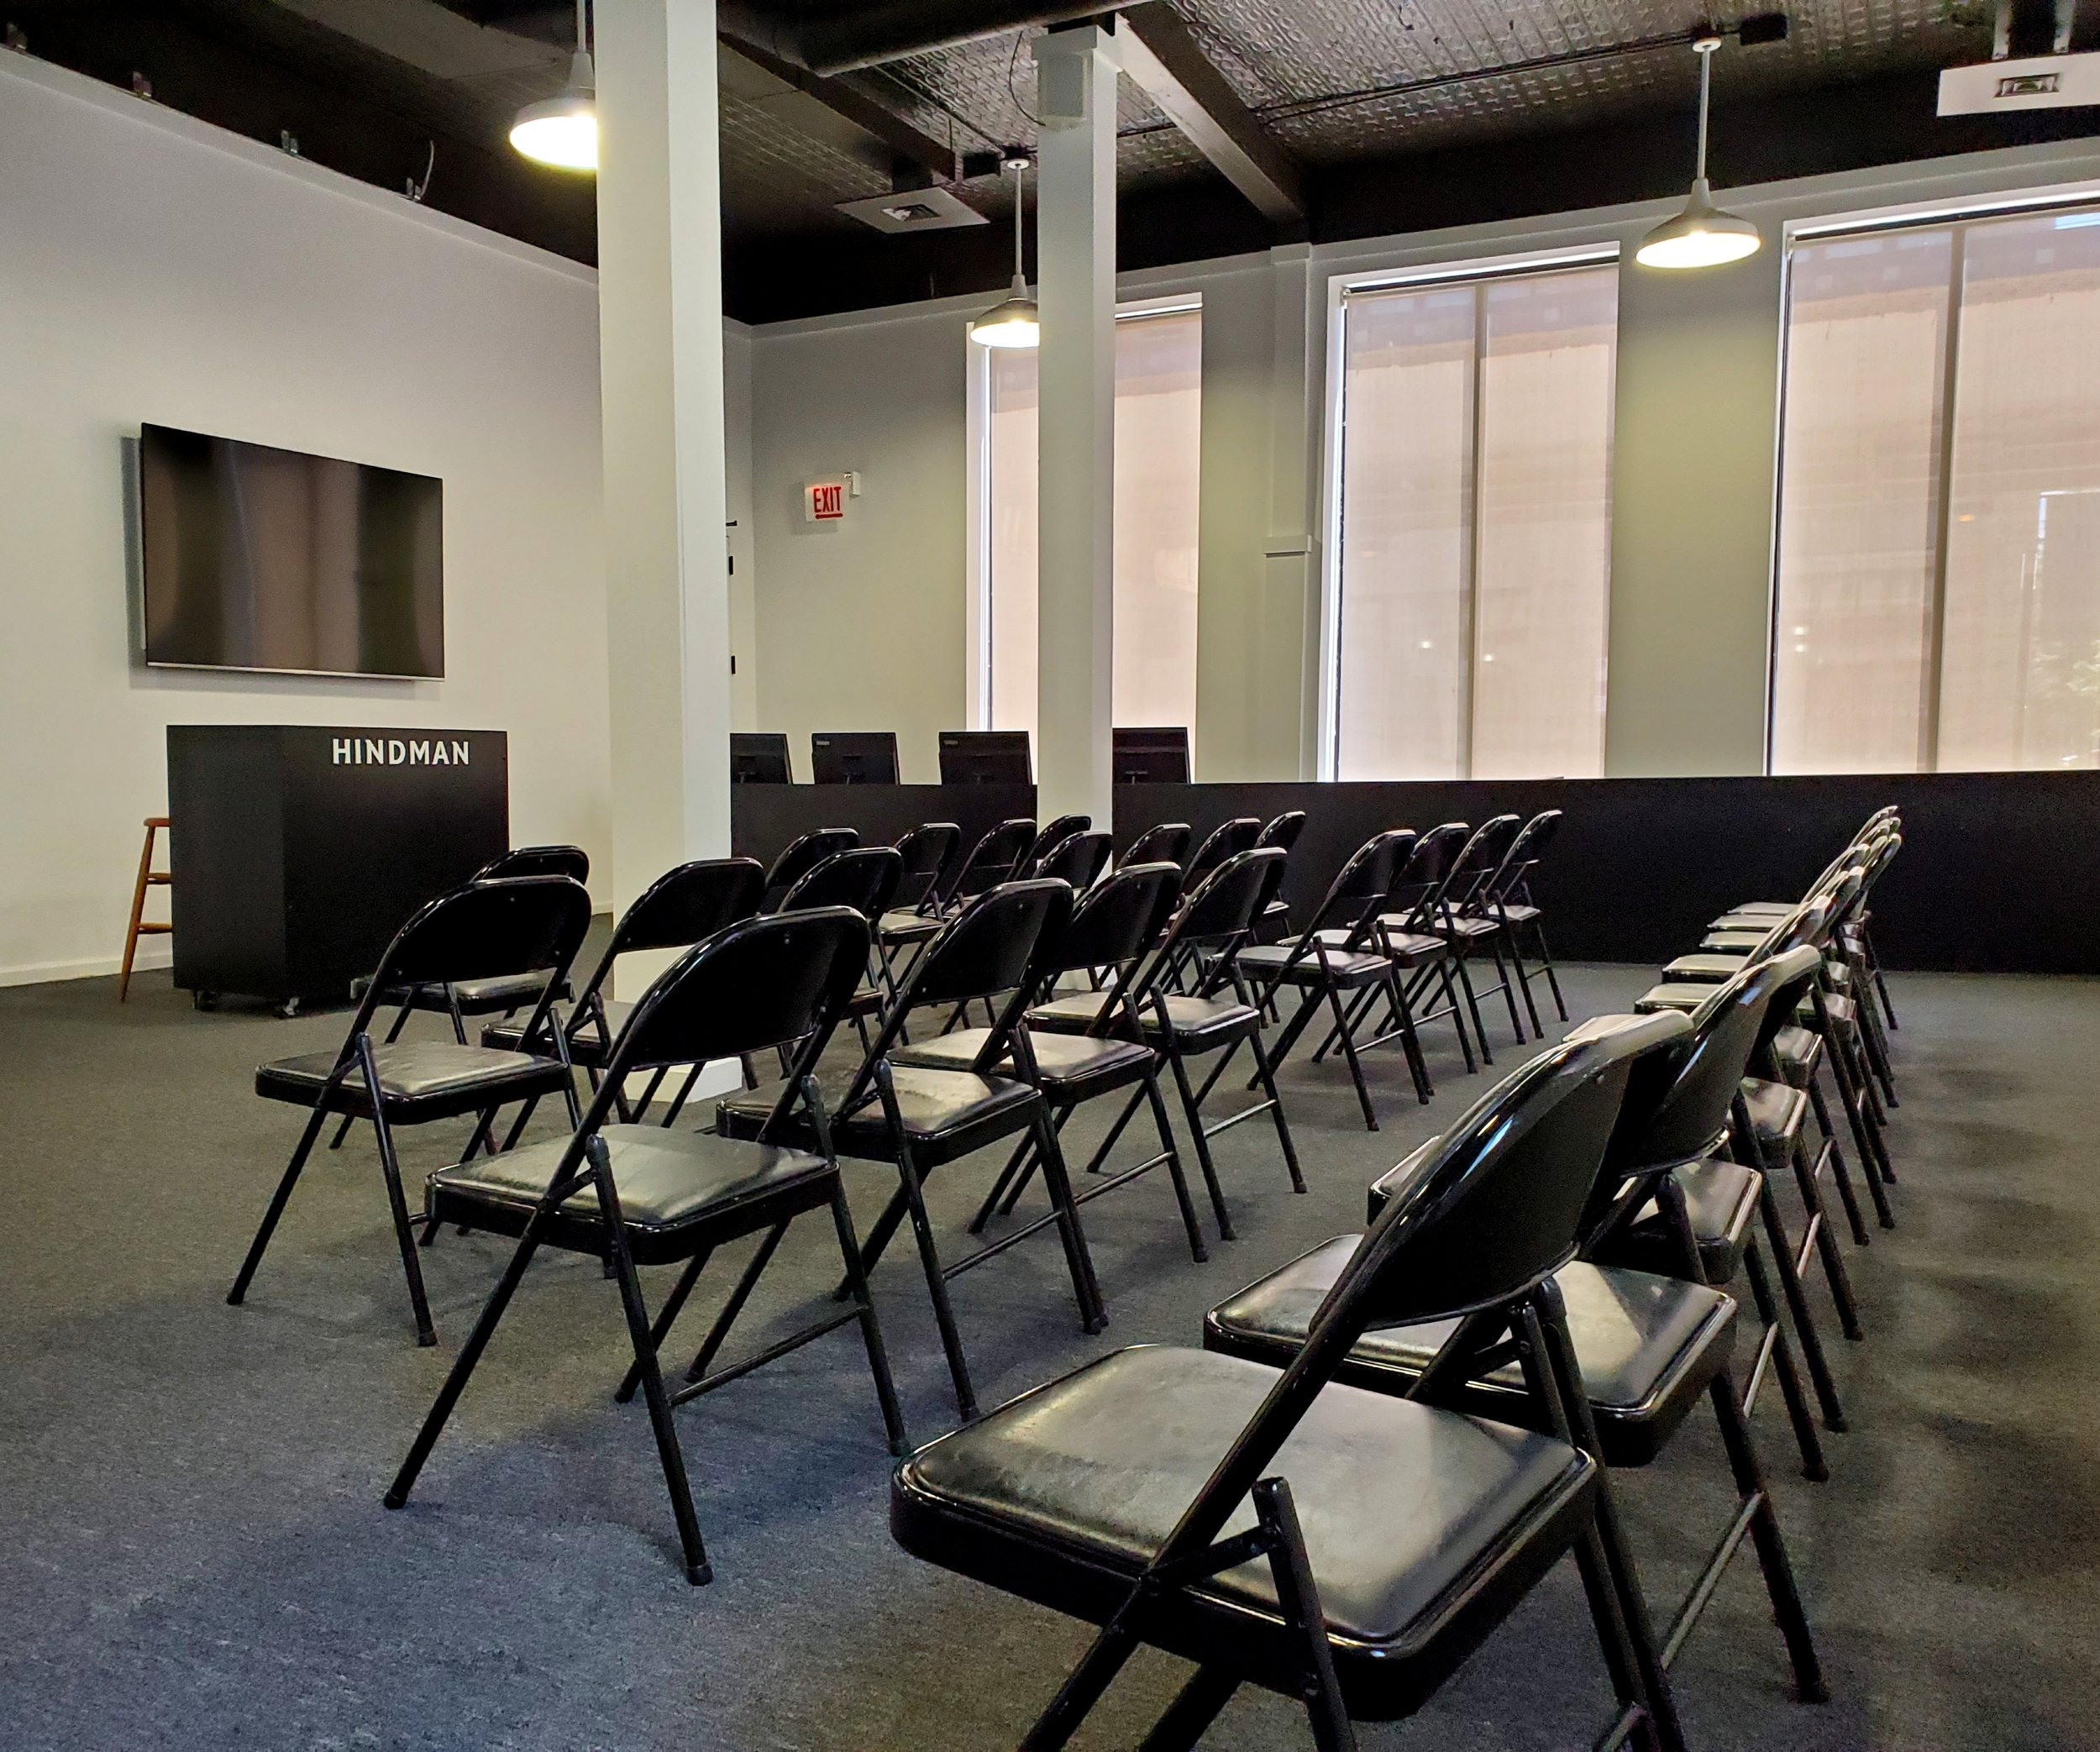 Live auction room at Hindman's Chicago location.